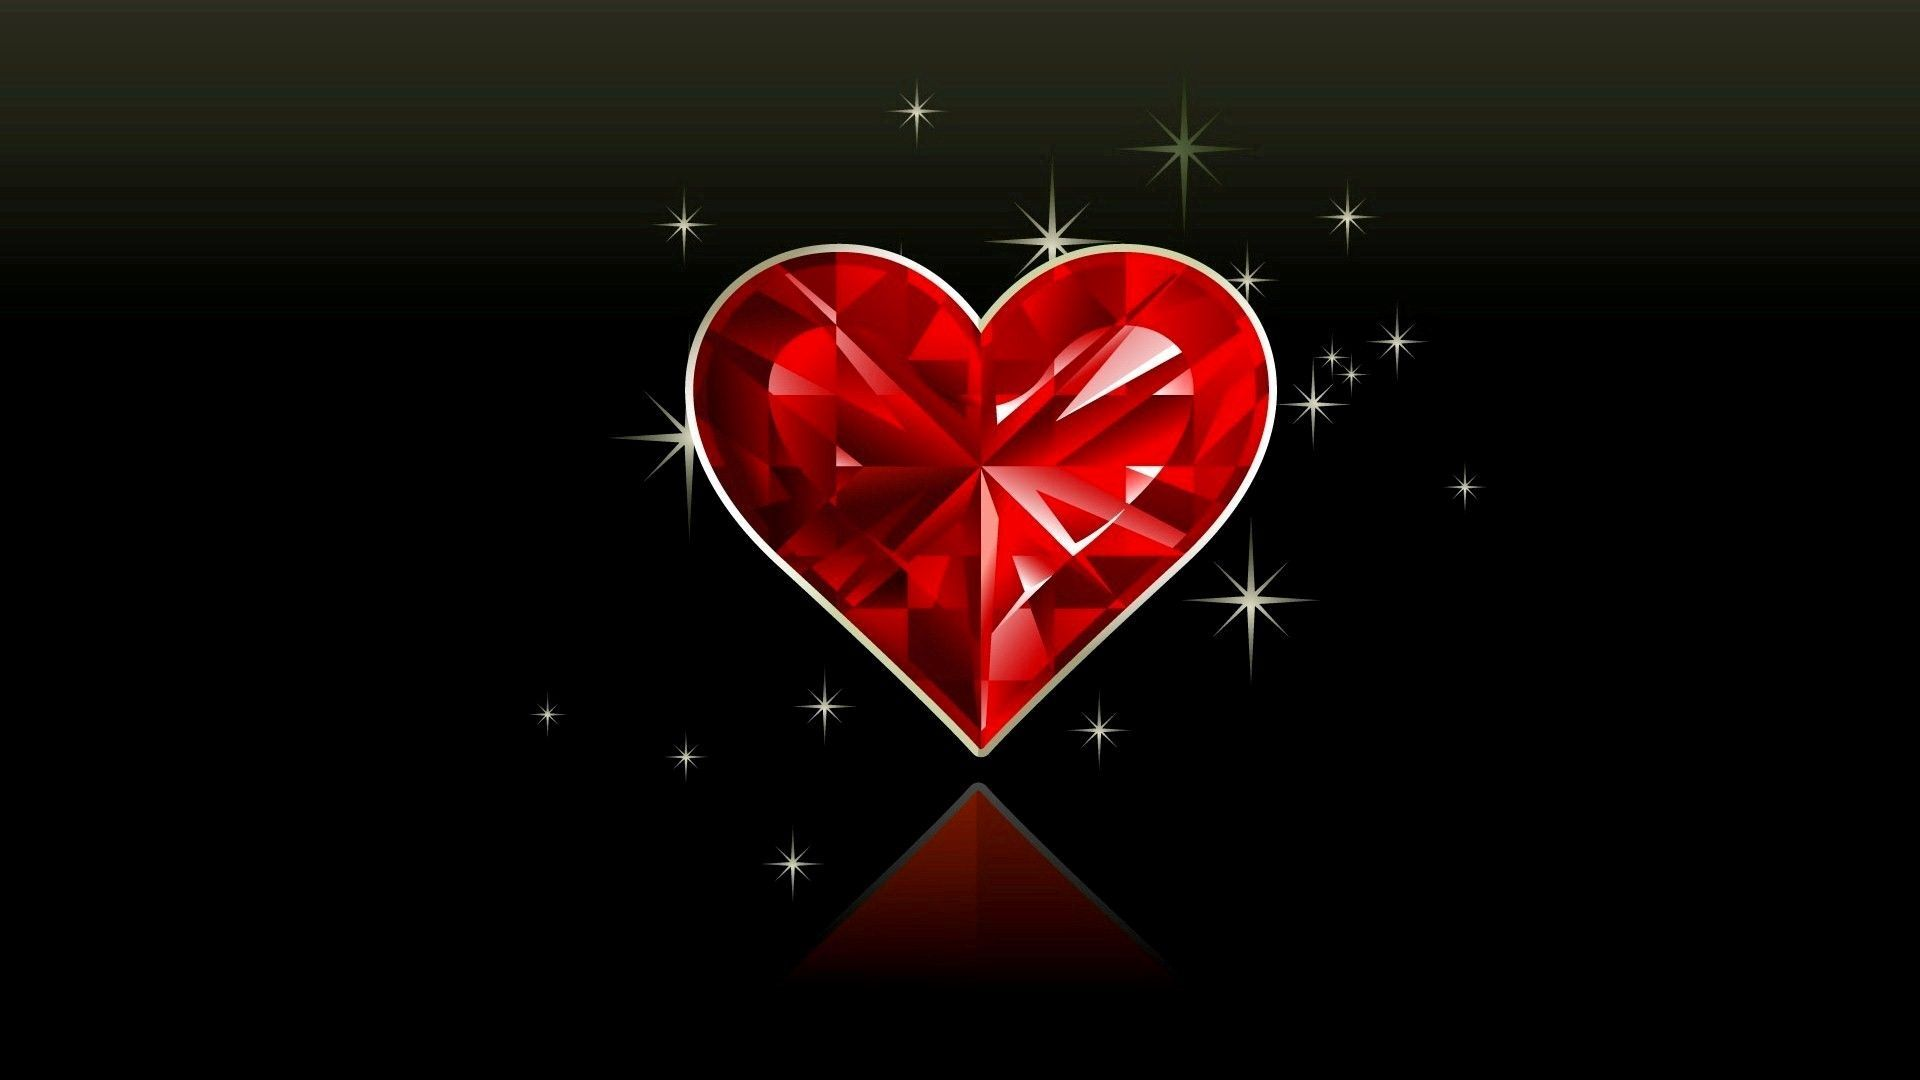 Crystal Heart Wallpapers Top Free Crystal Heart Backgrounds Wallpaperaccess